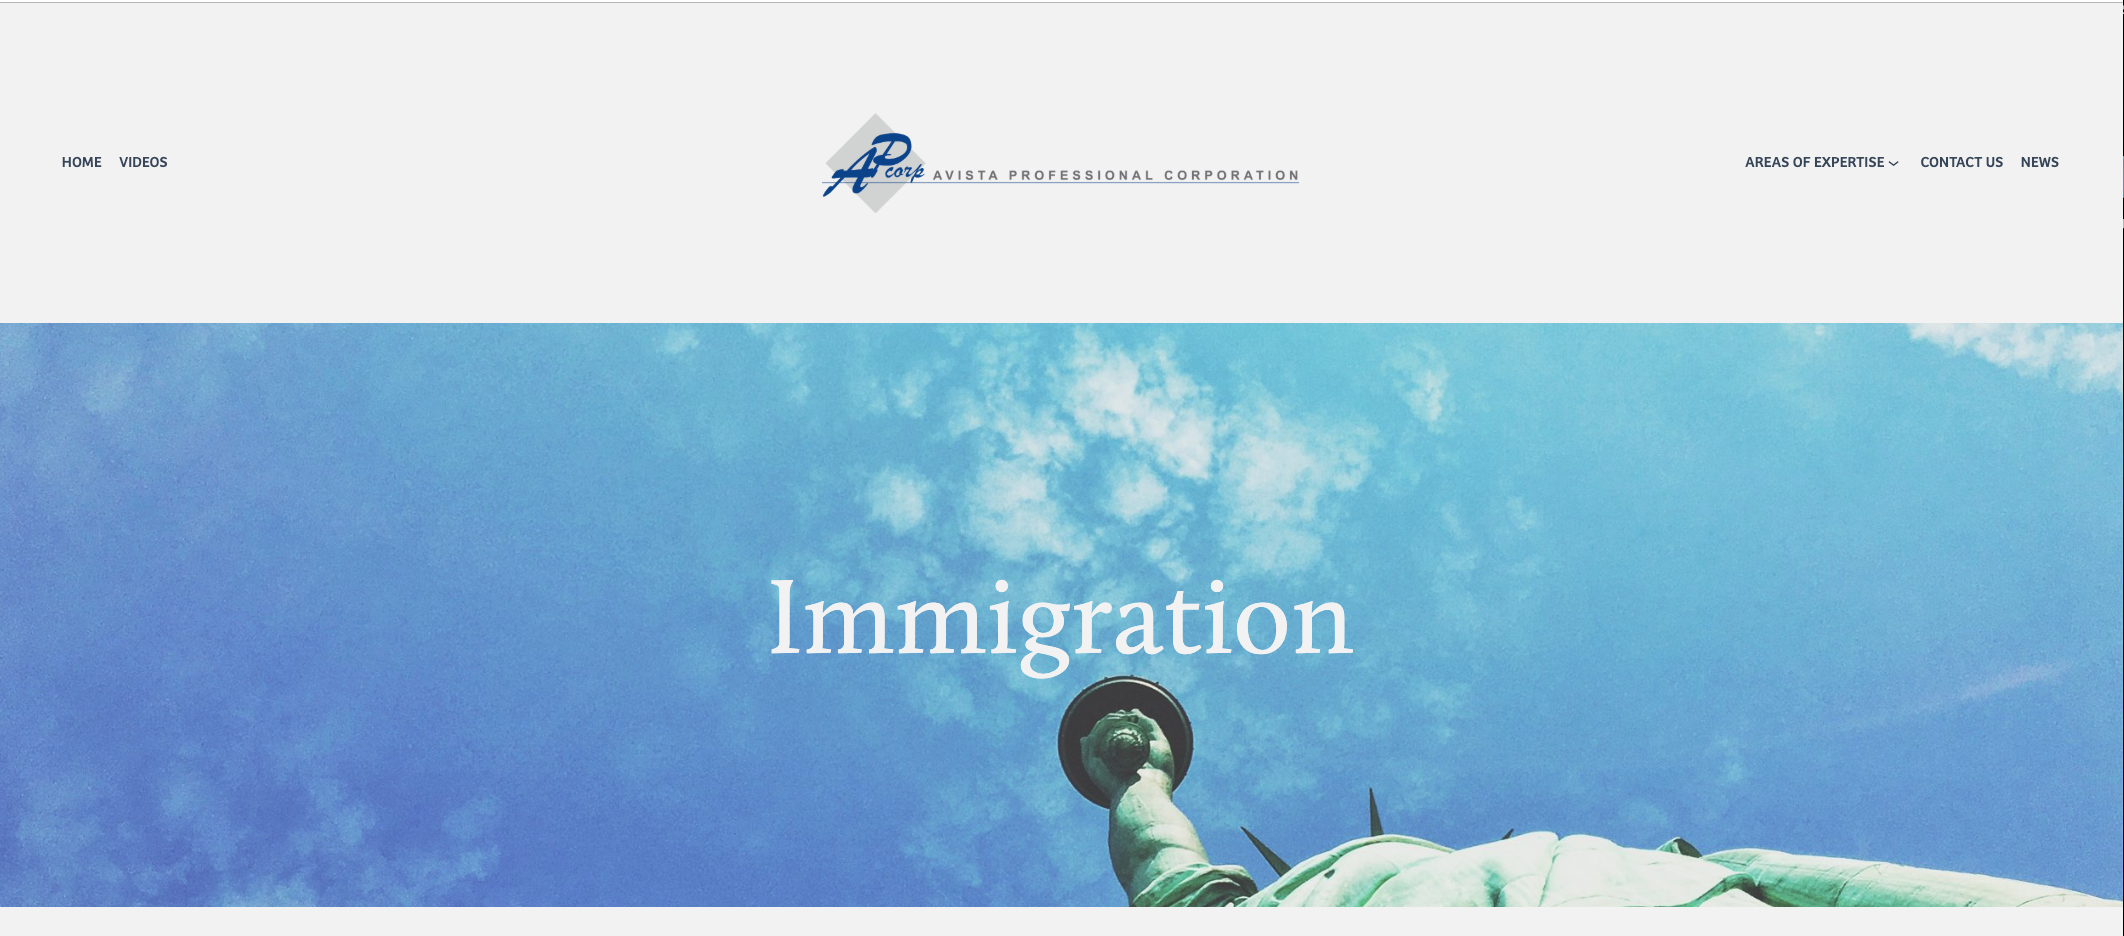 www.avistalegal.com - Professional Immigration to Canada